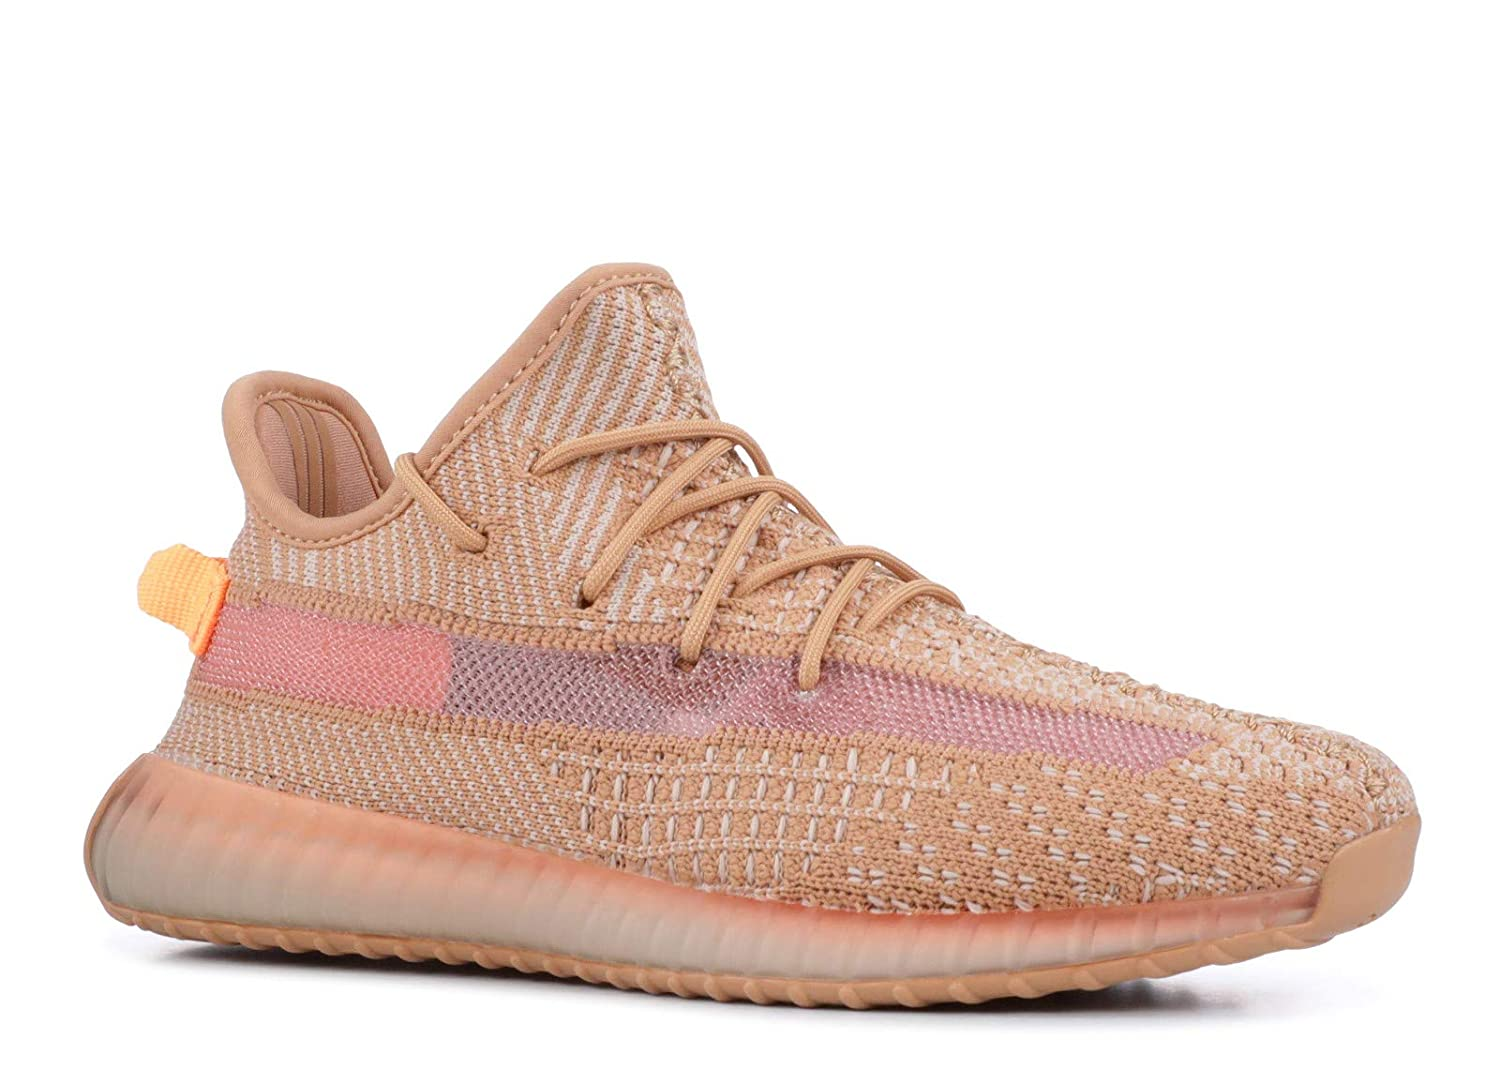 super popular 4acc7 dfc60 adidas Yeezy Boost 350 V2 Kids 'Clay' - EG6872